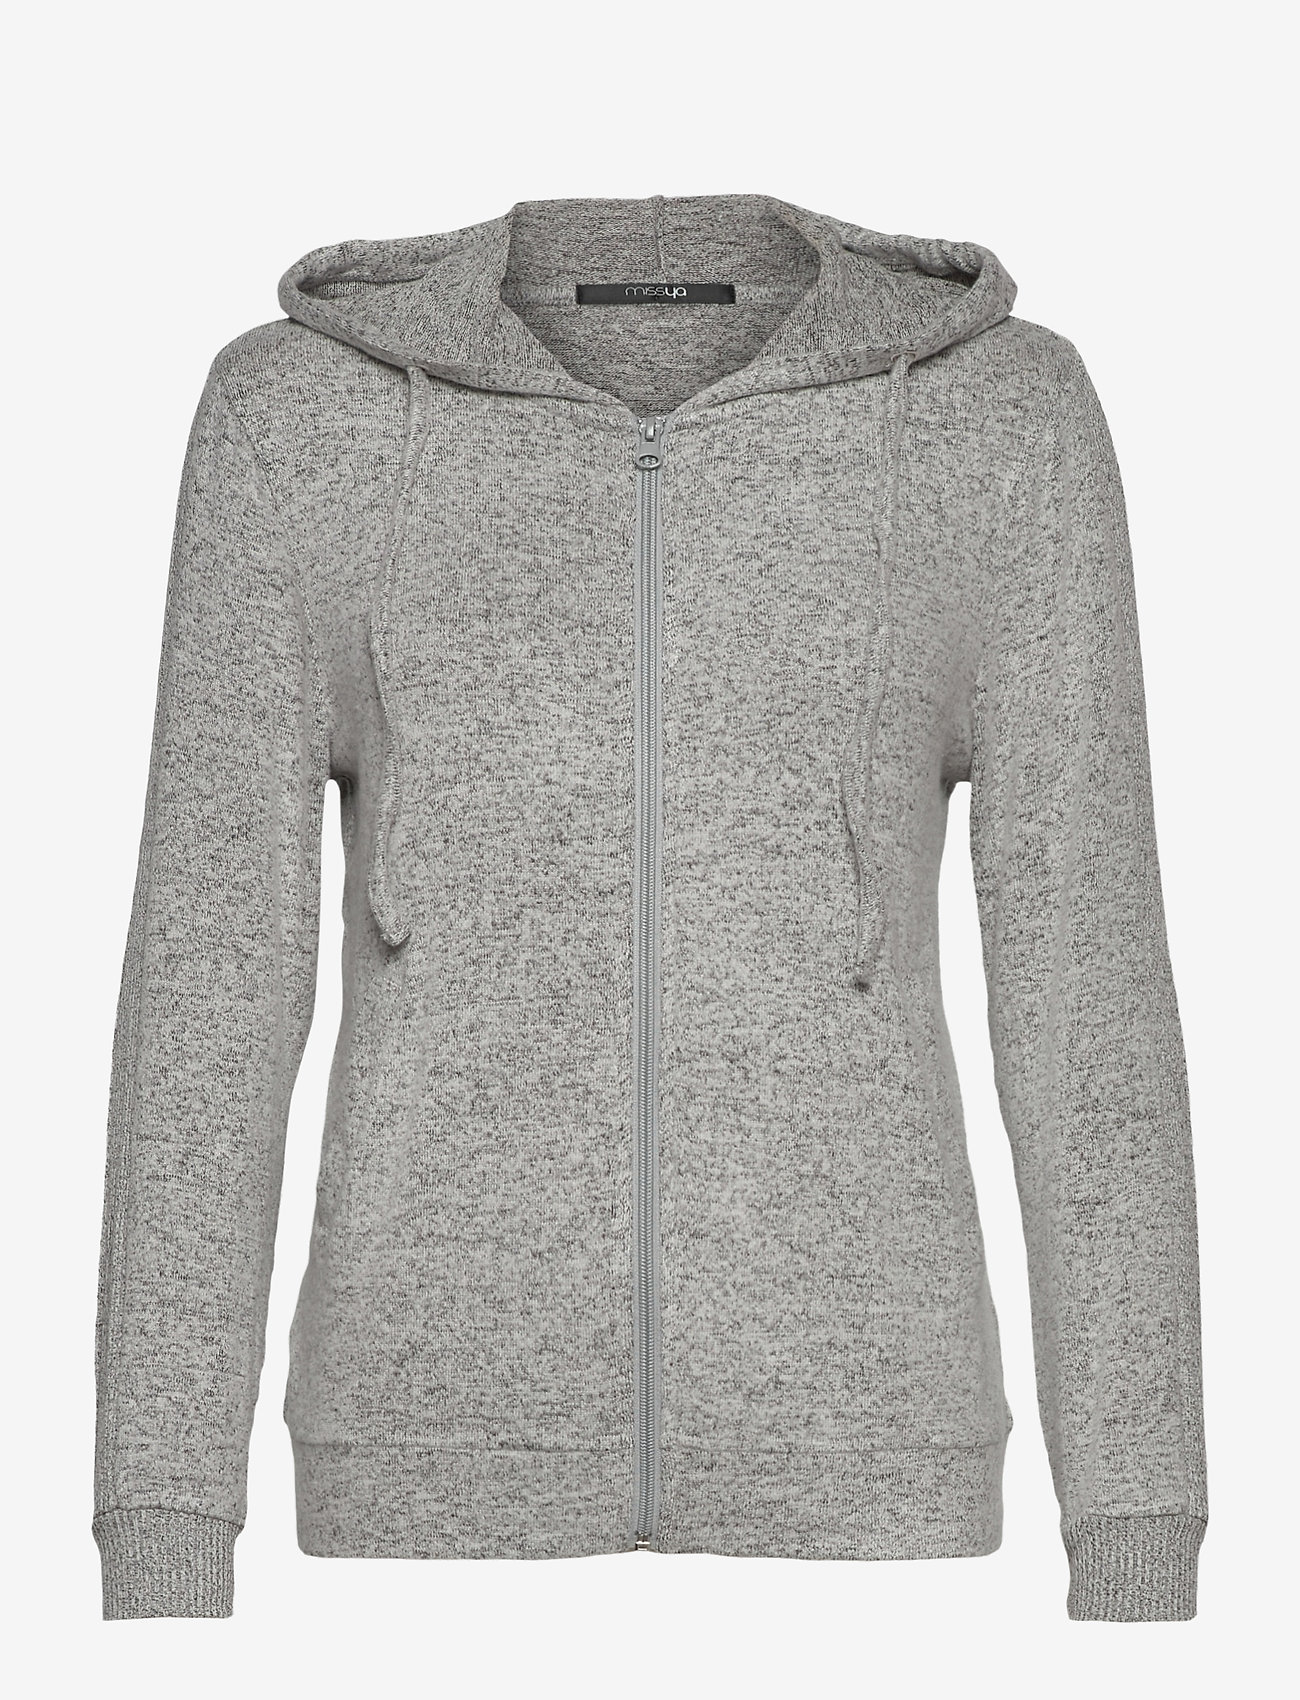 Missya - Cozy hoodie - hauts - light grey melange w tape - 0